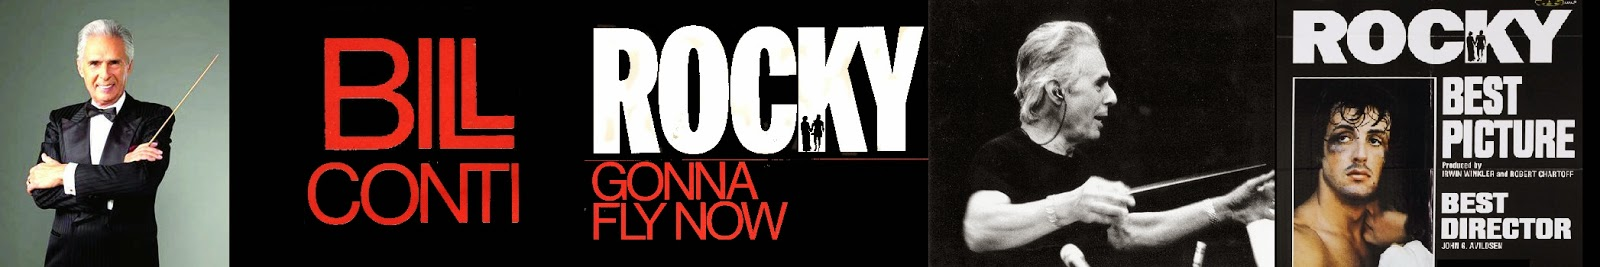 Bill Conti interview, Bill Conti Rocky theme